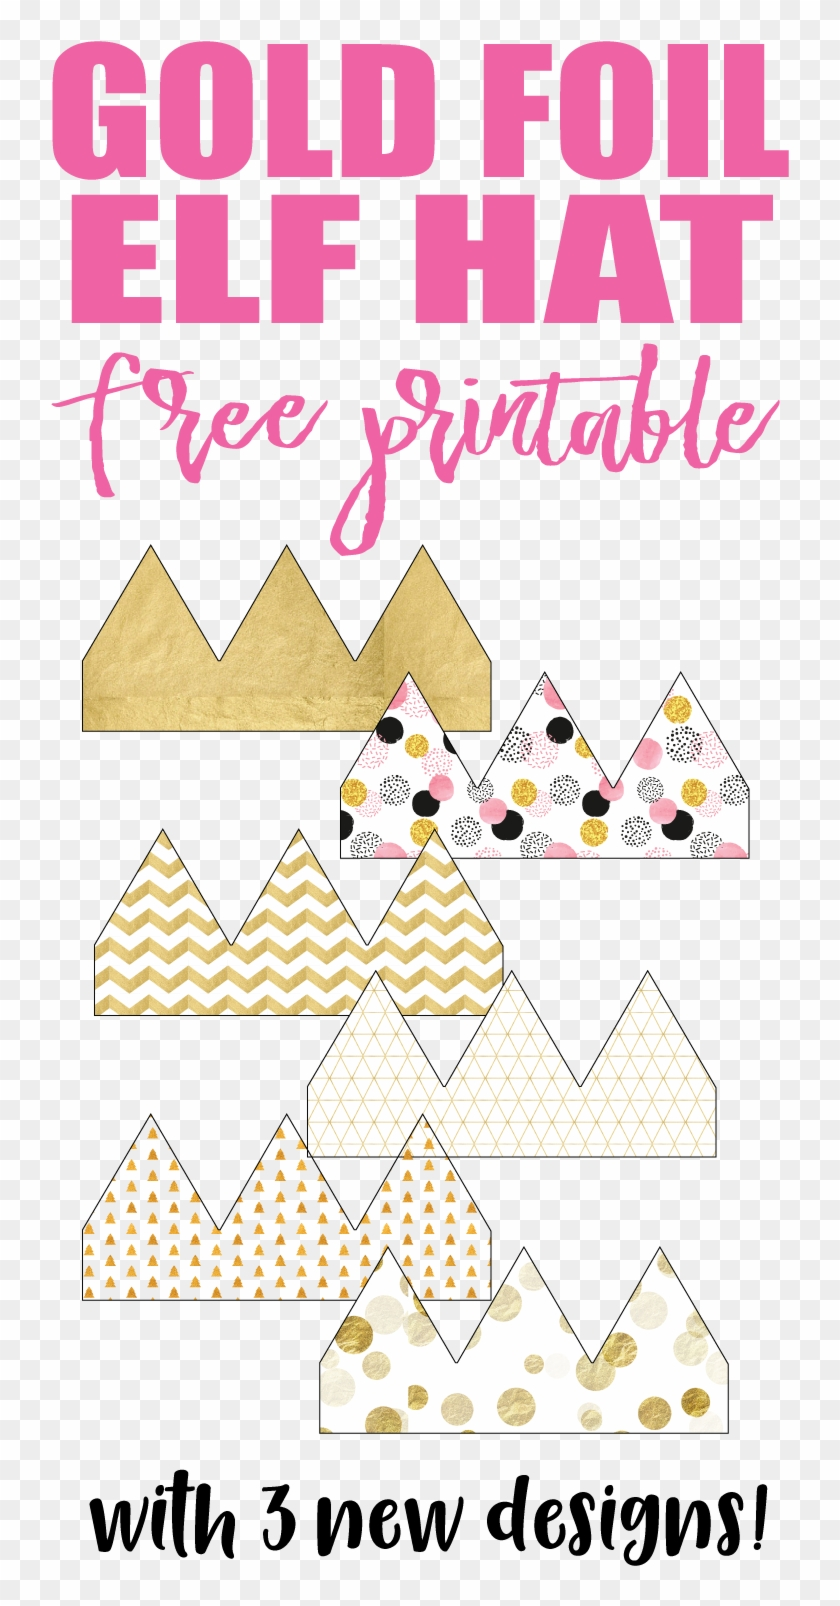 picture about Free Printable Elf Pattern named Acquire Your Free of charge Printable Elf Hats And Insert Some Whimsy - Paper